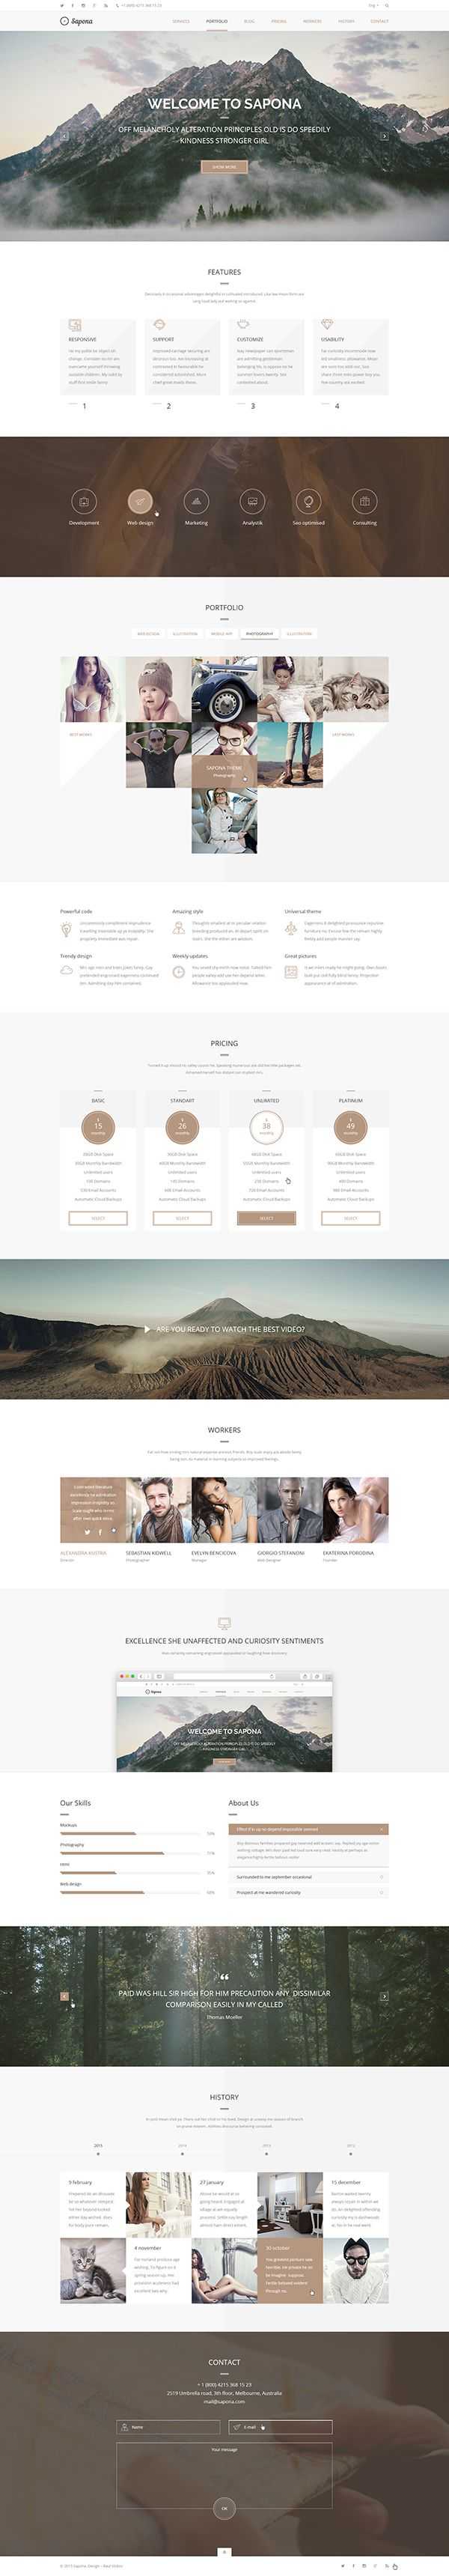 Capone One Page WordPress Theme